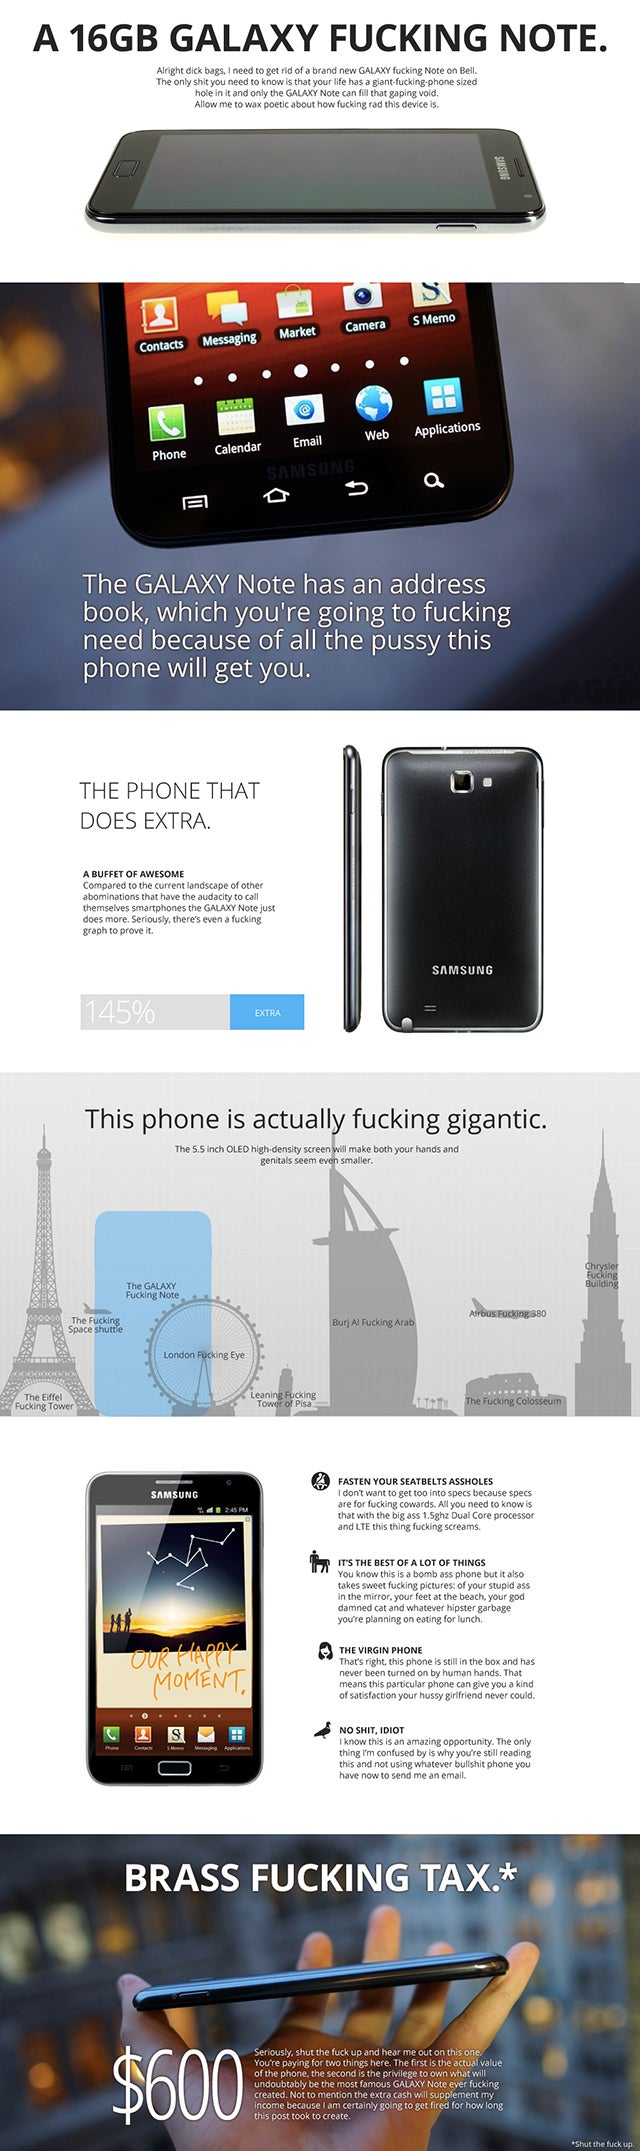 The Best F*cking Ad Ever for the Samsung Galaxy F*cking Note